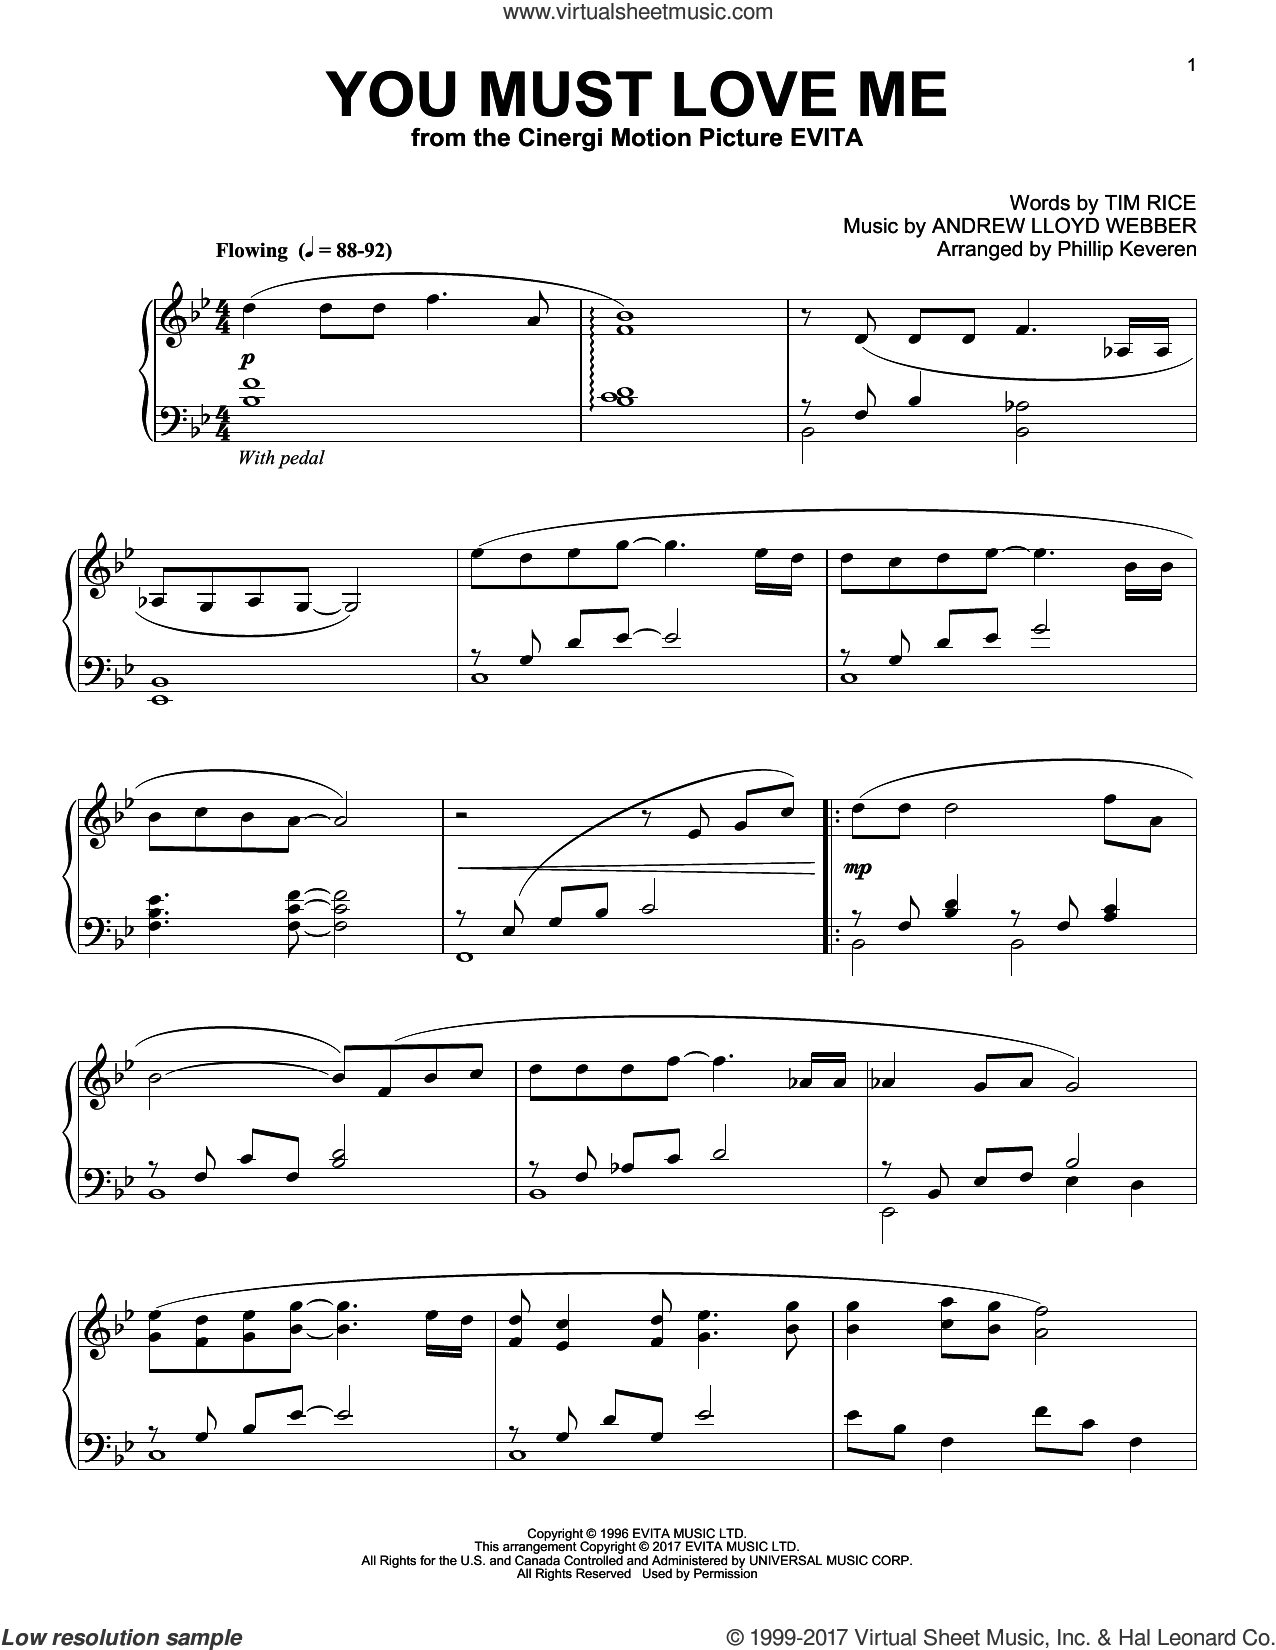 You Must Love Me sheet music for piano solo by Andrew Lloyd Webber, Phillip Keveren, Madonna and Tim Rice, intermediate